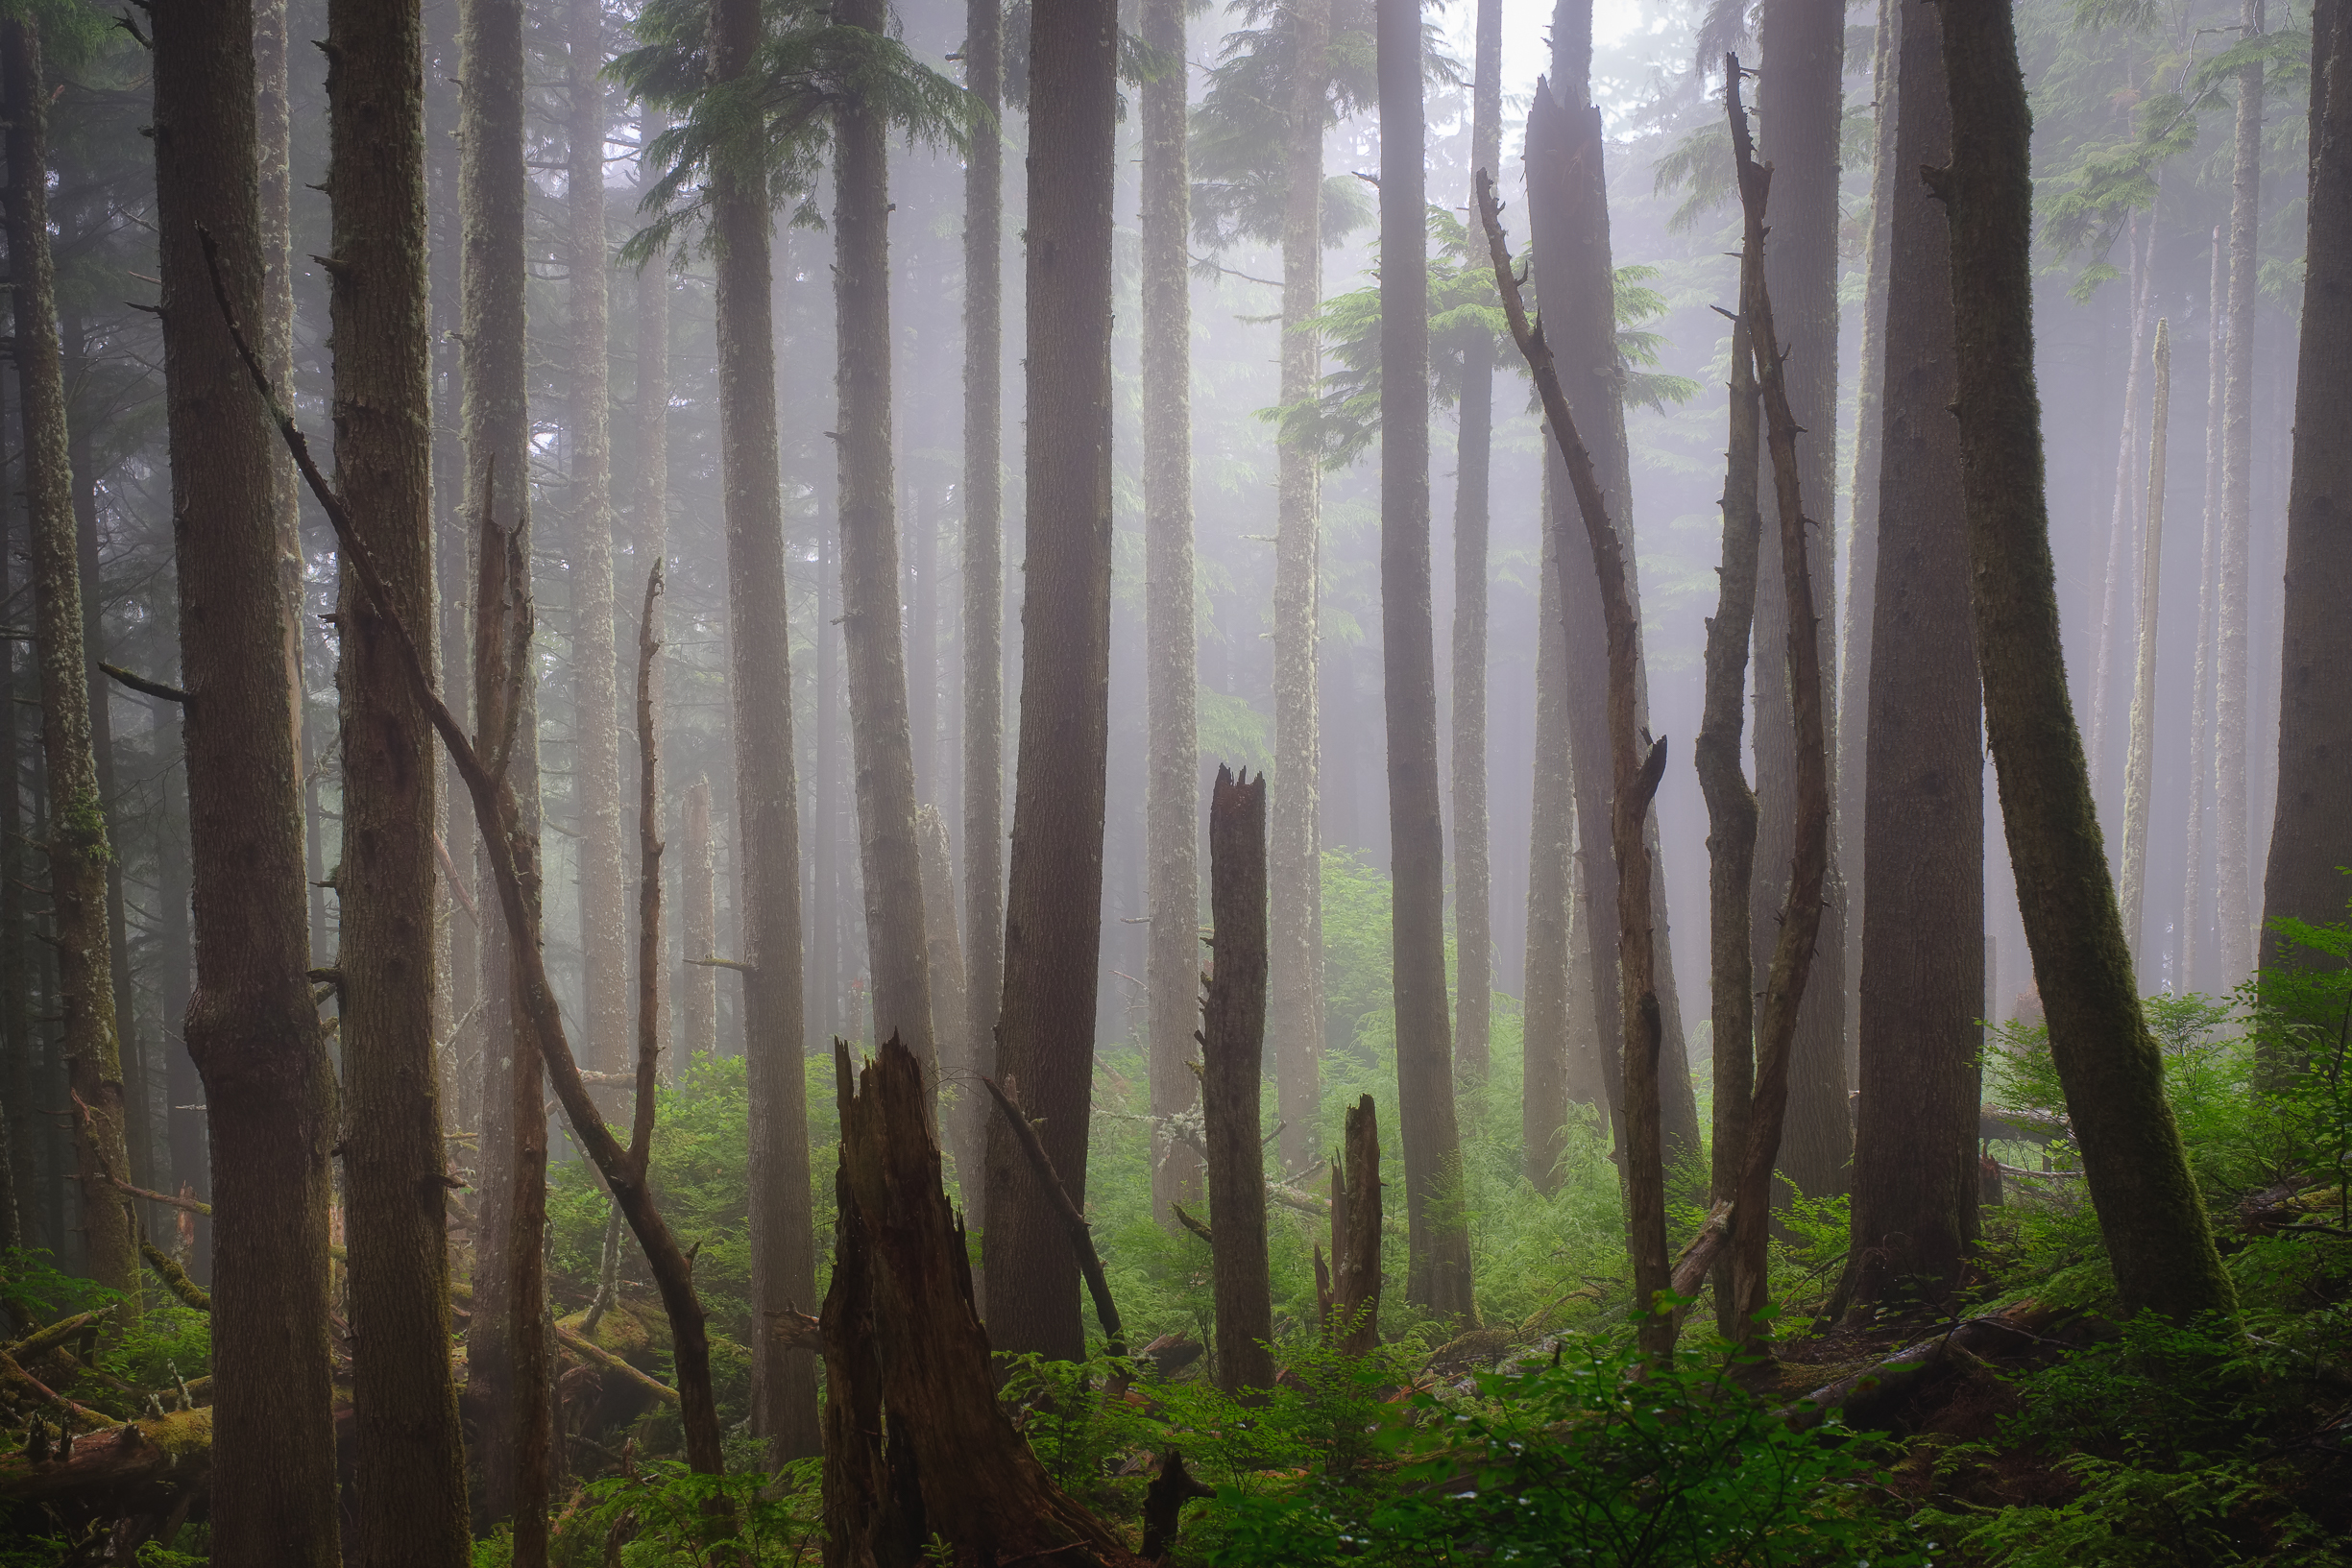 A forest on the Oregon coast in August this year after deciding to go out when I noticed the conditions might work out in this location!